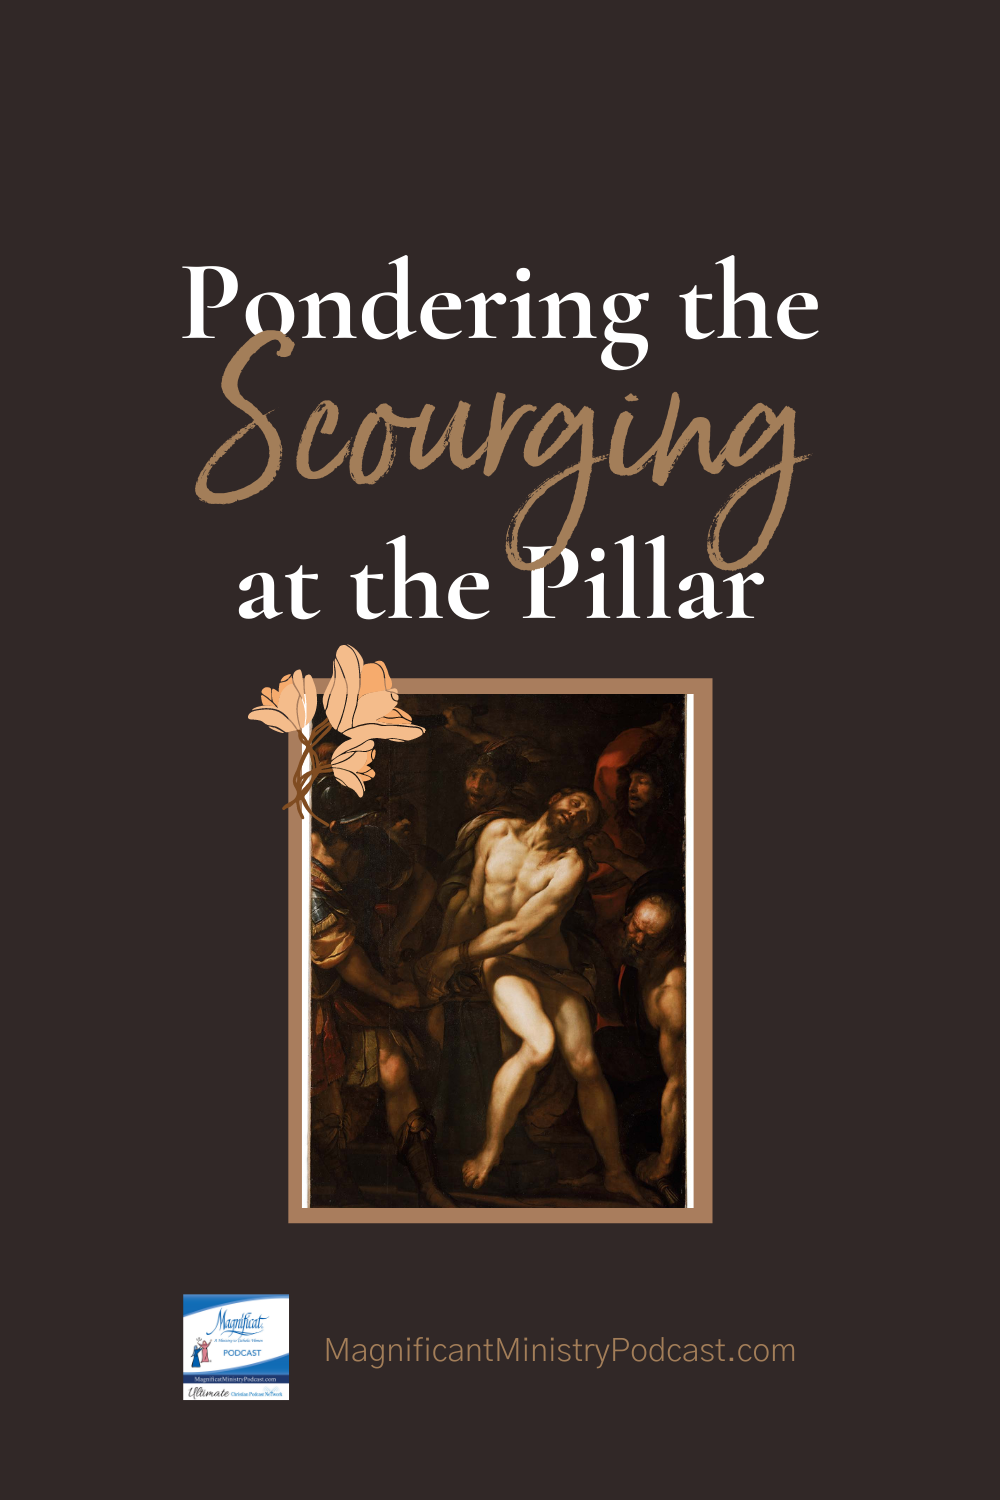 Pondering the Scourging at the Pillar